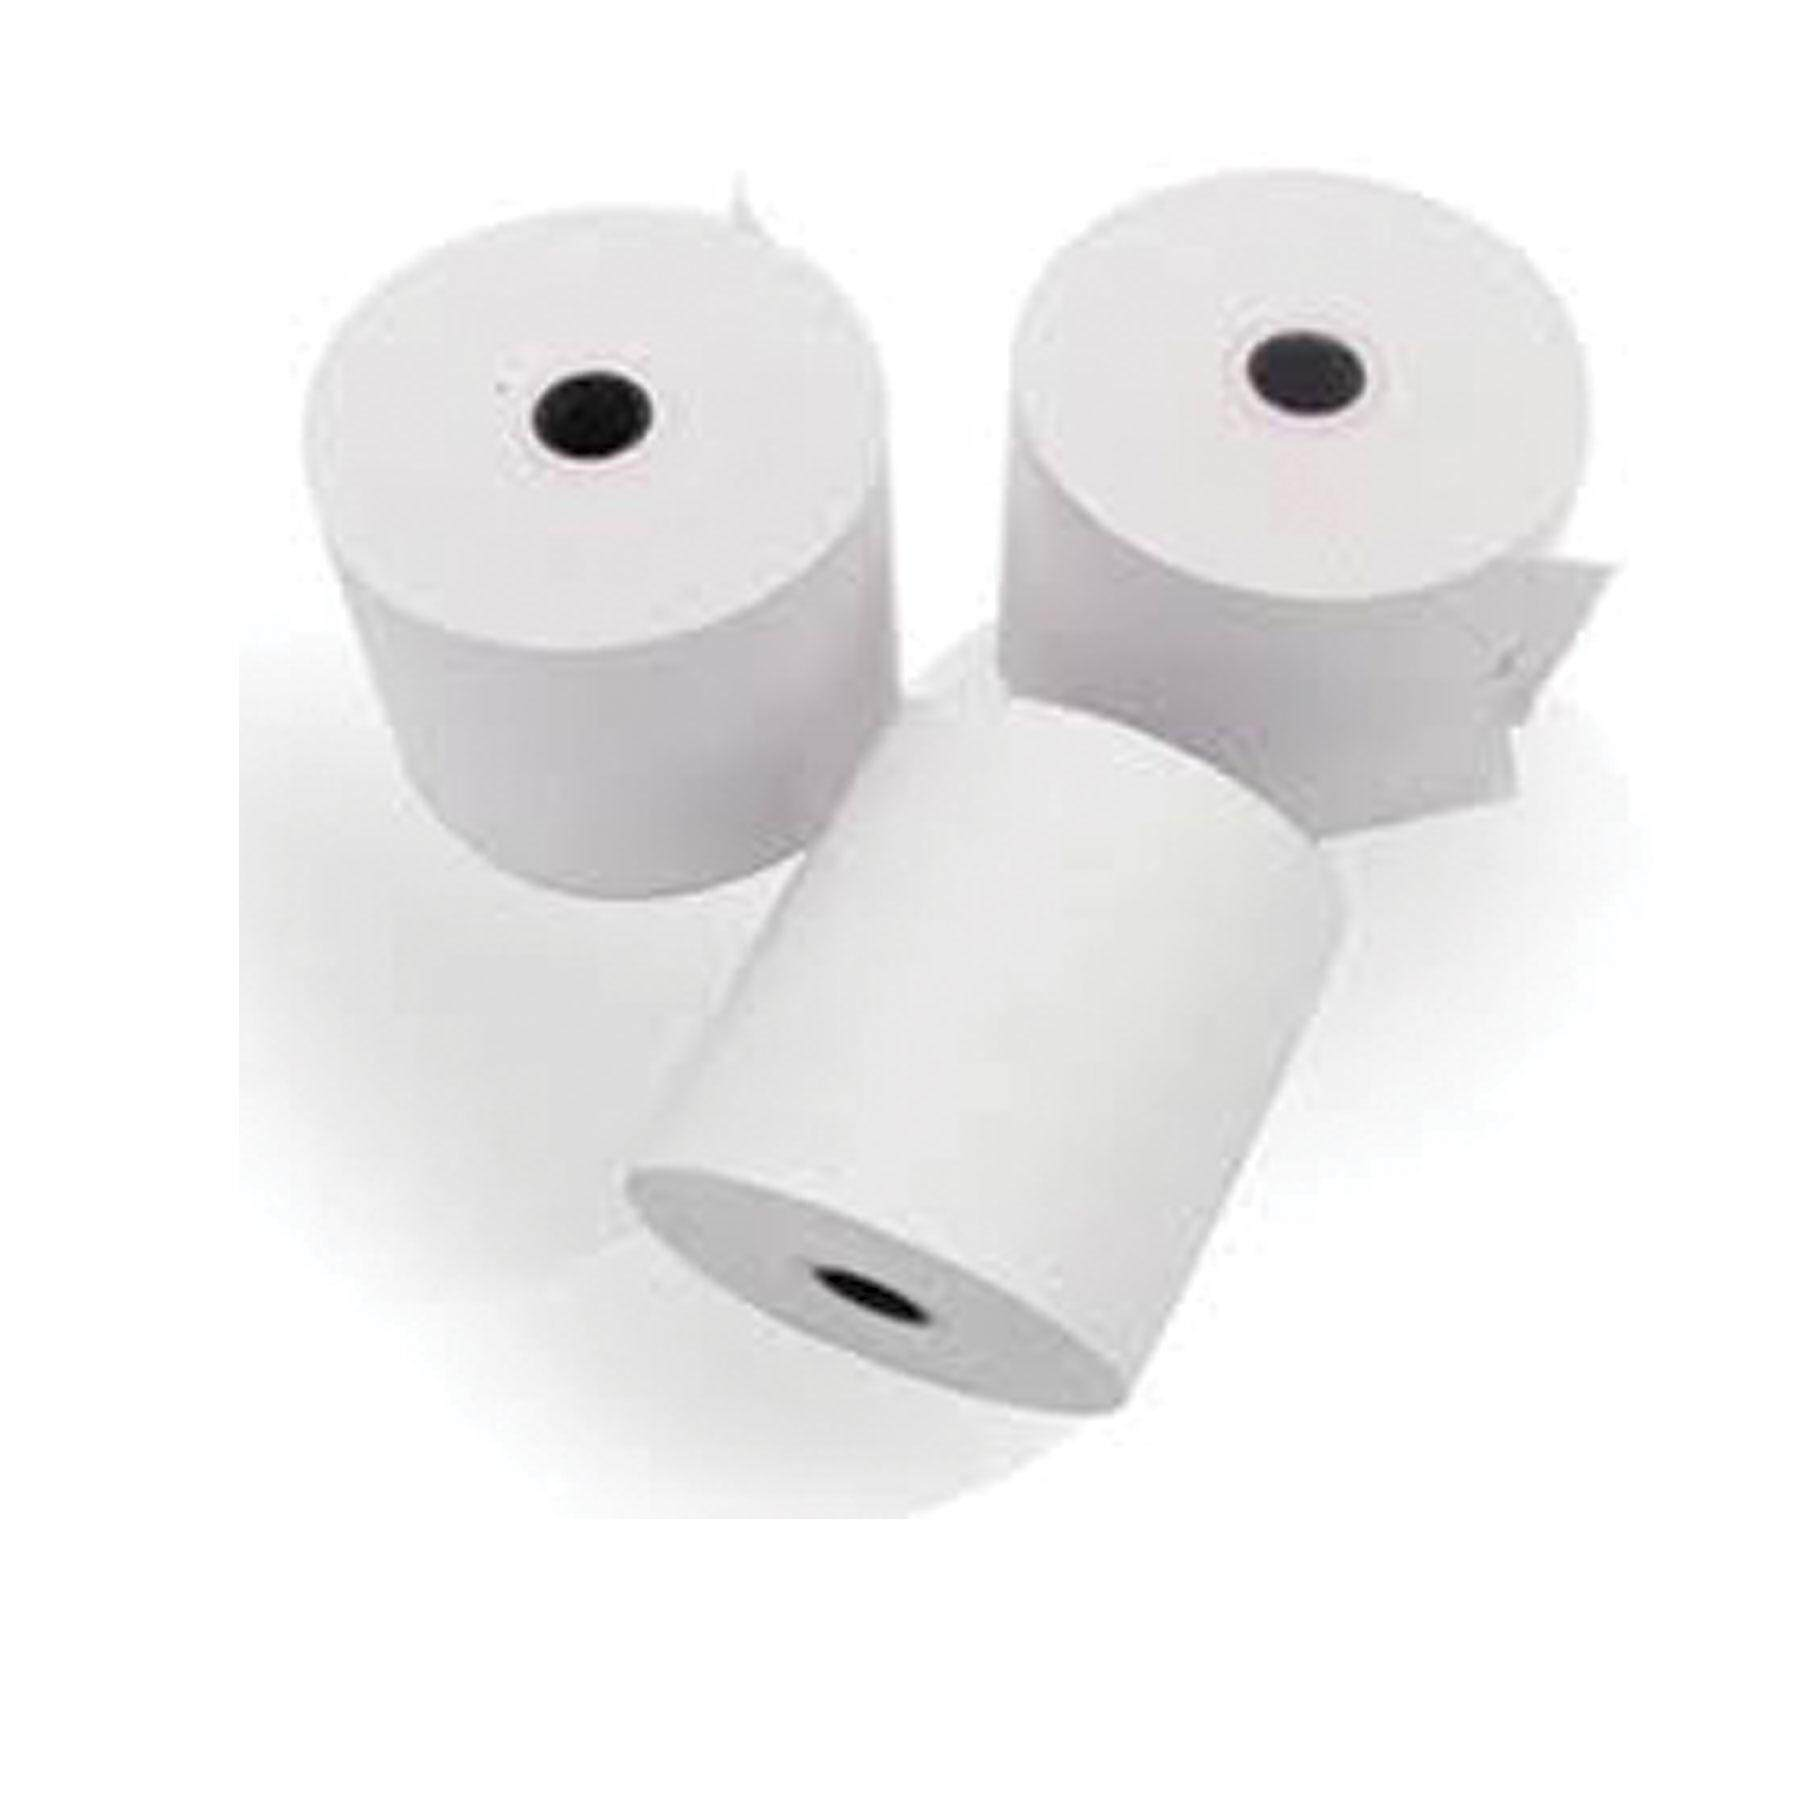 Thermal Receipt Paper Rolls 80mm X 60mm (100 Rolls) - With Core By Save Universal Enterprise.